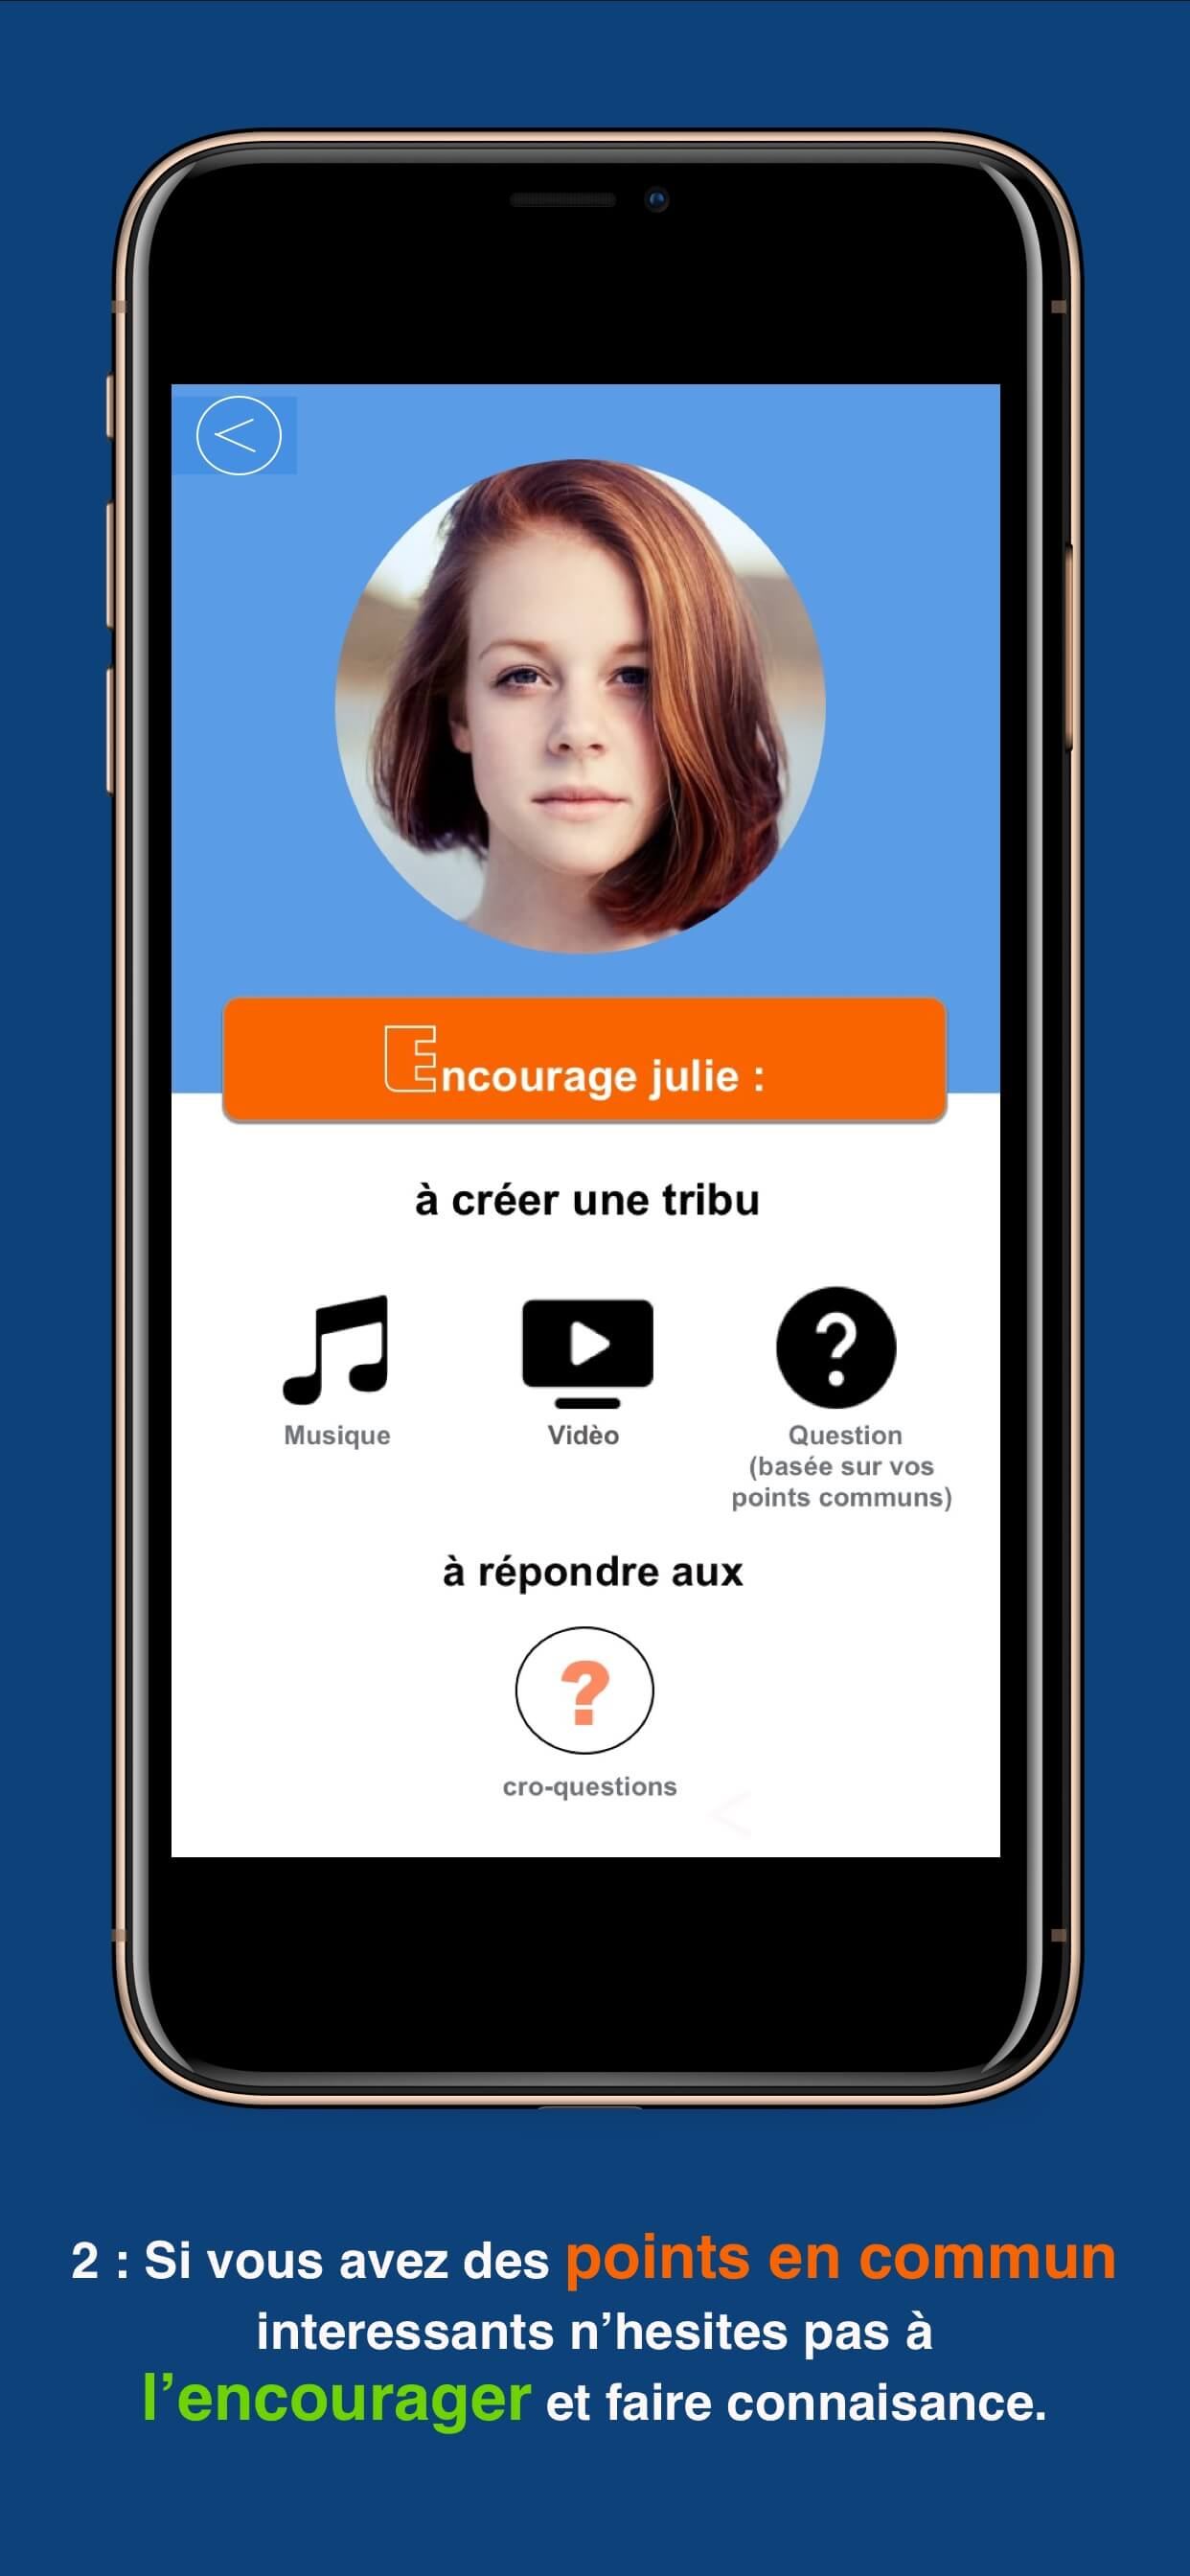 elyot-application-ios-iphone-freelance-bordeaux-jeremy-peltier-9